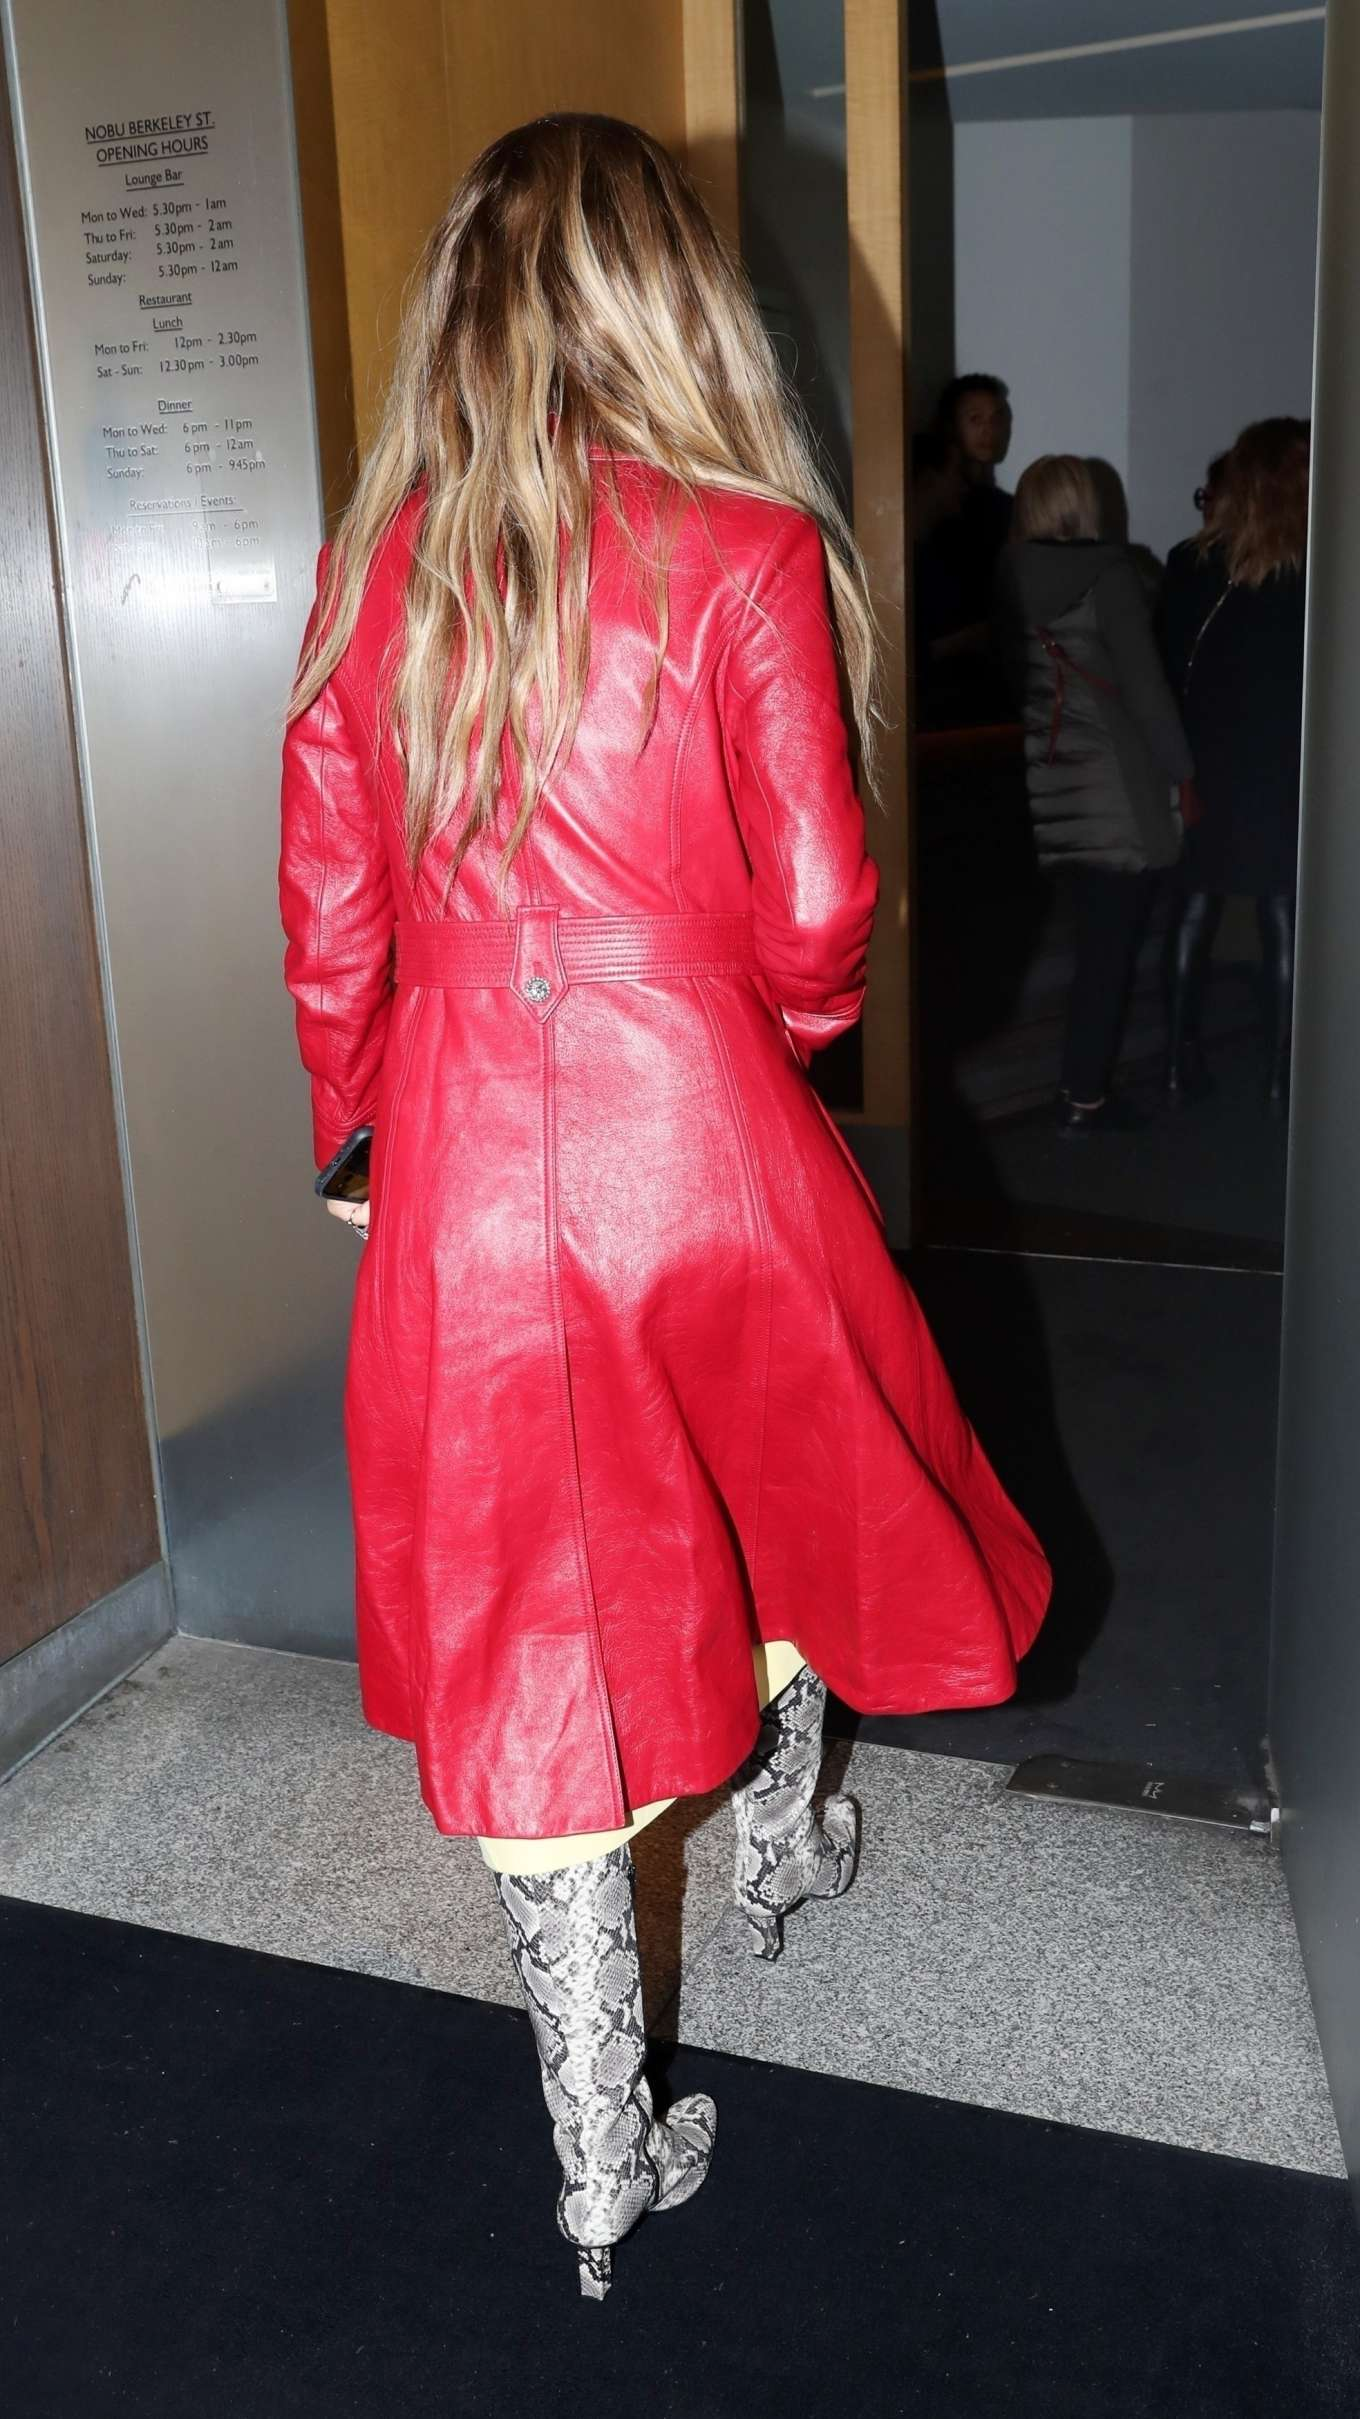 Rita Ora outside NOBU restarant